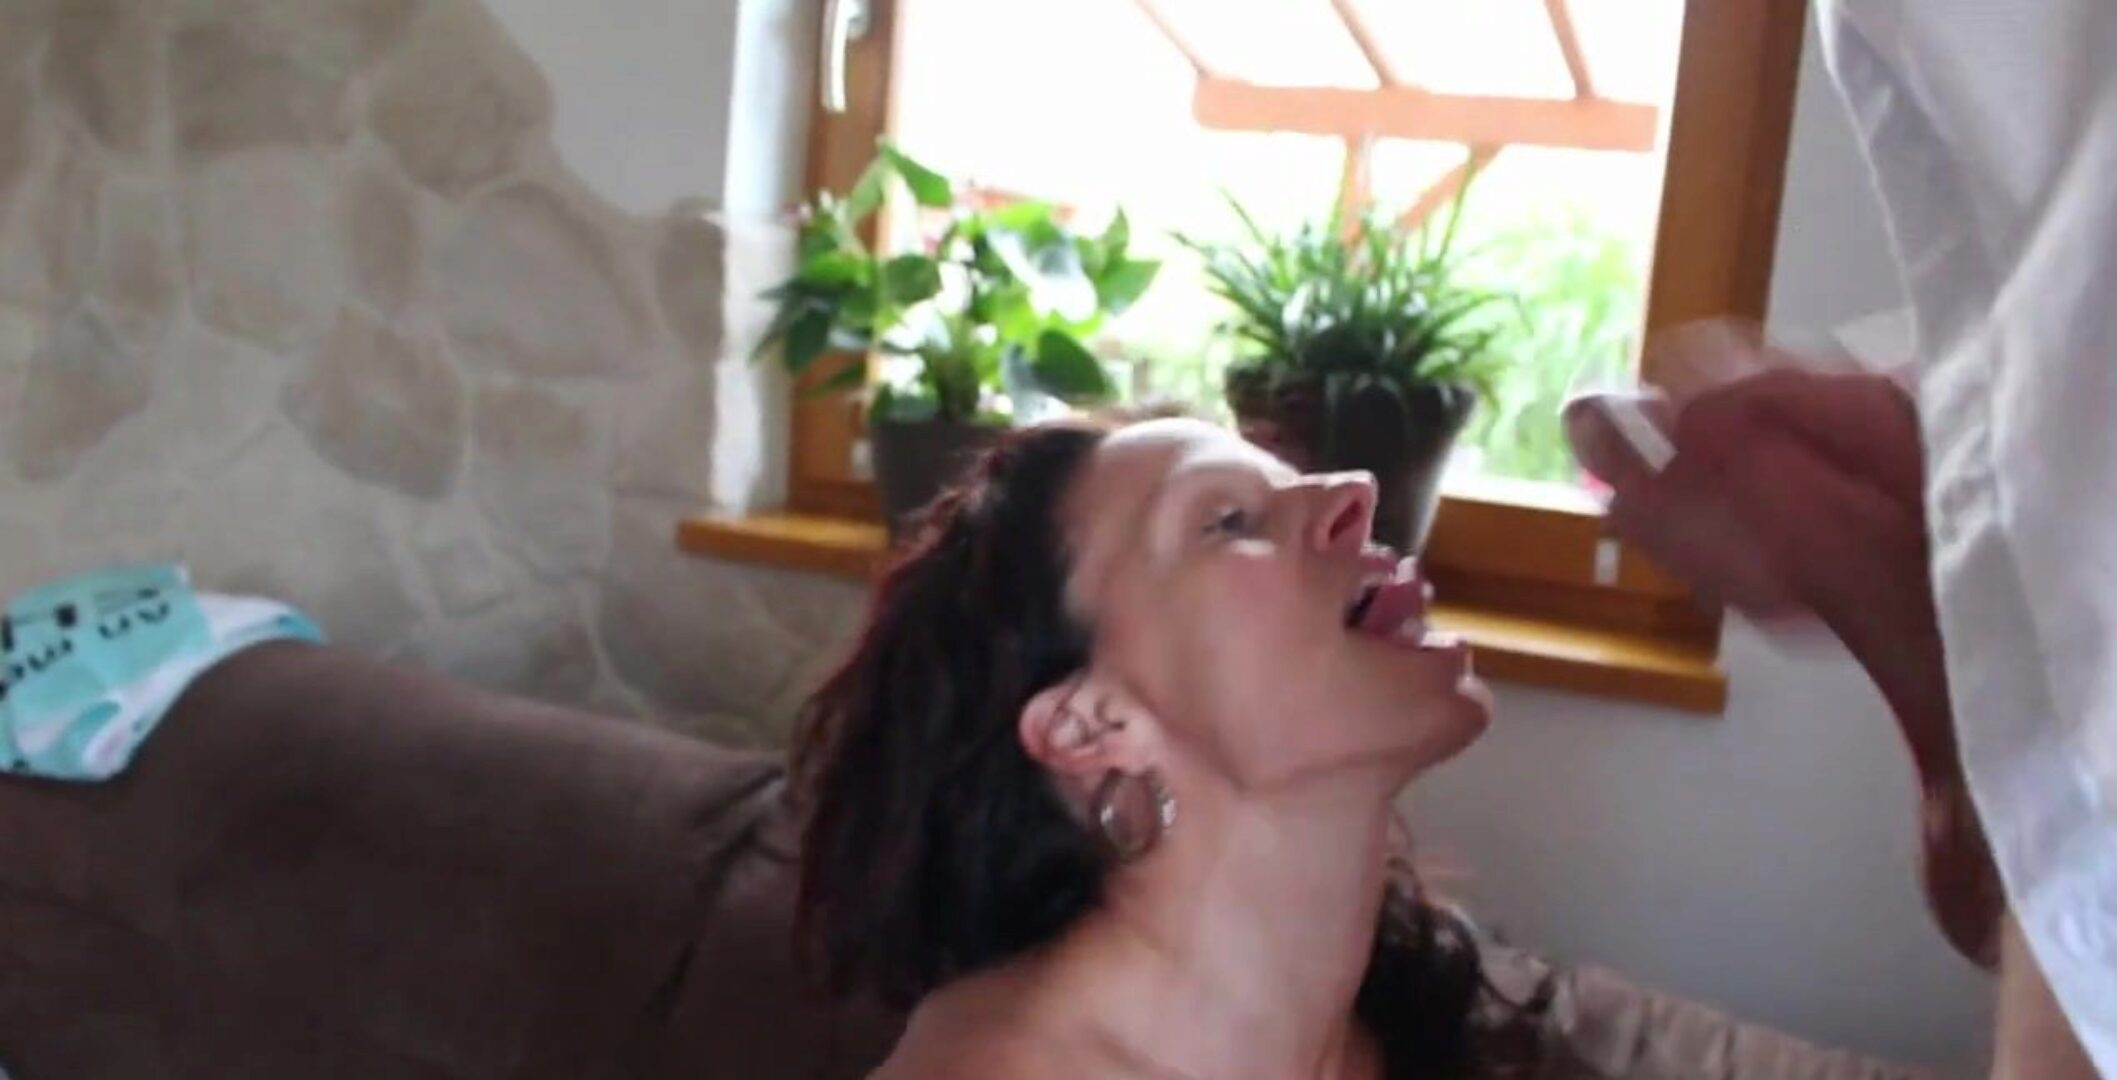 User Comes in My Wife`s Mouth and She Loves It and Swallows Everything - Free Porn Videos - YouPorn Watch user comes in my wife`s face hole and that babe likes it and guzzles anything online on YouPorn.com. YouPorn is the fattest Amateur porno movie site with the finest selection of free-for-all high quality hotwife clips Enjoy our HD porno clips on any implement of your choosing!